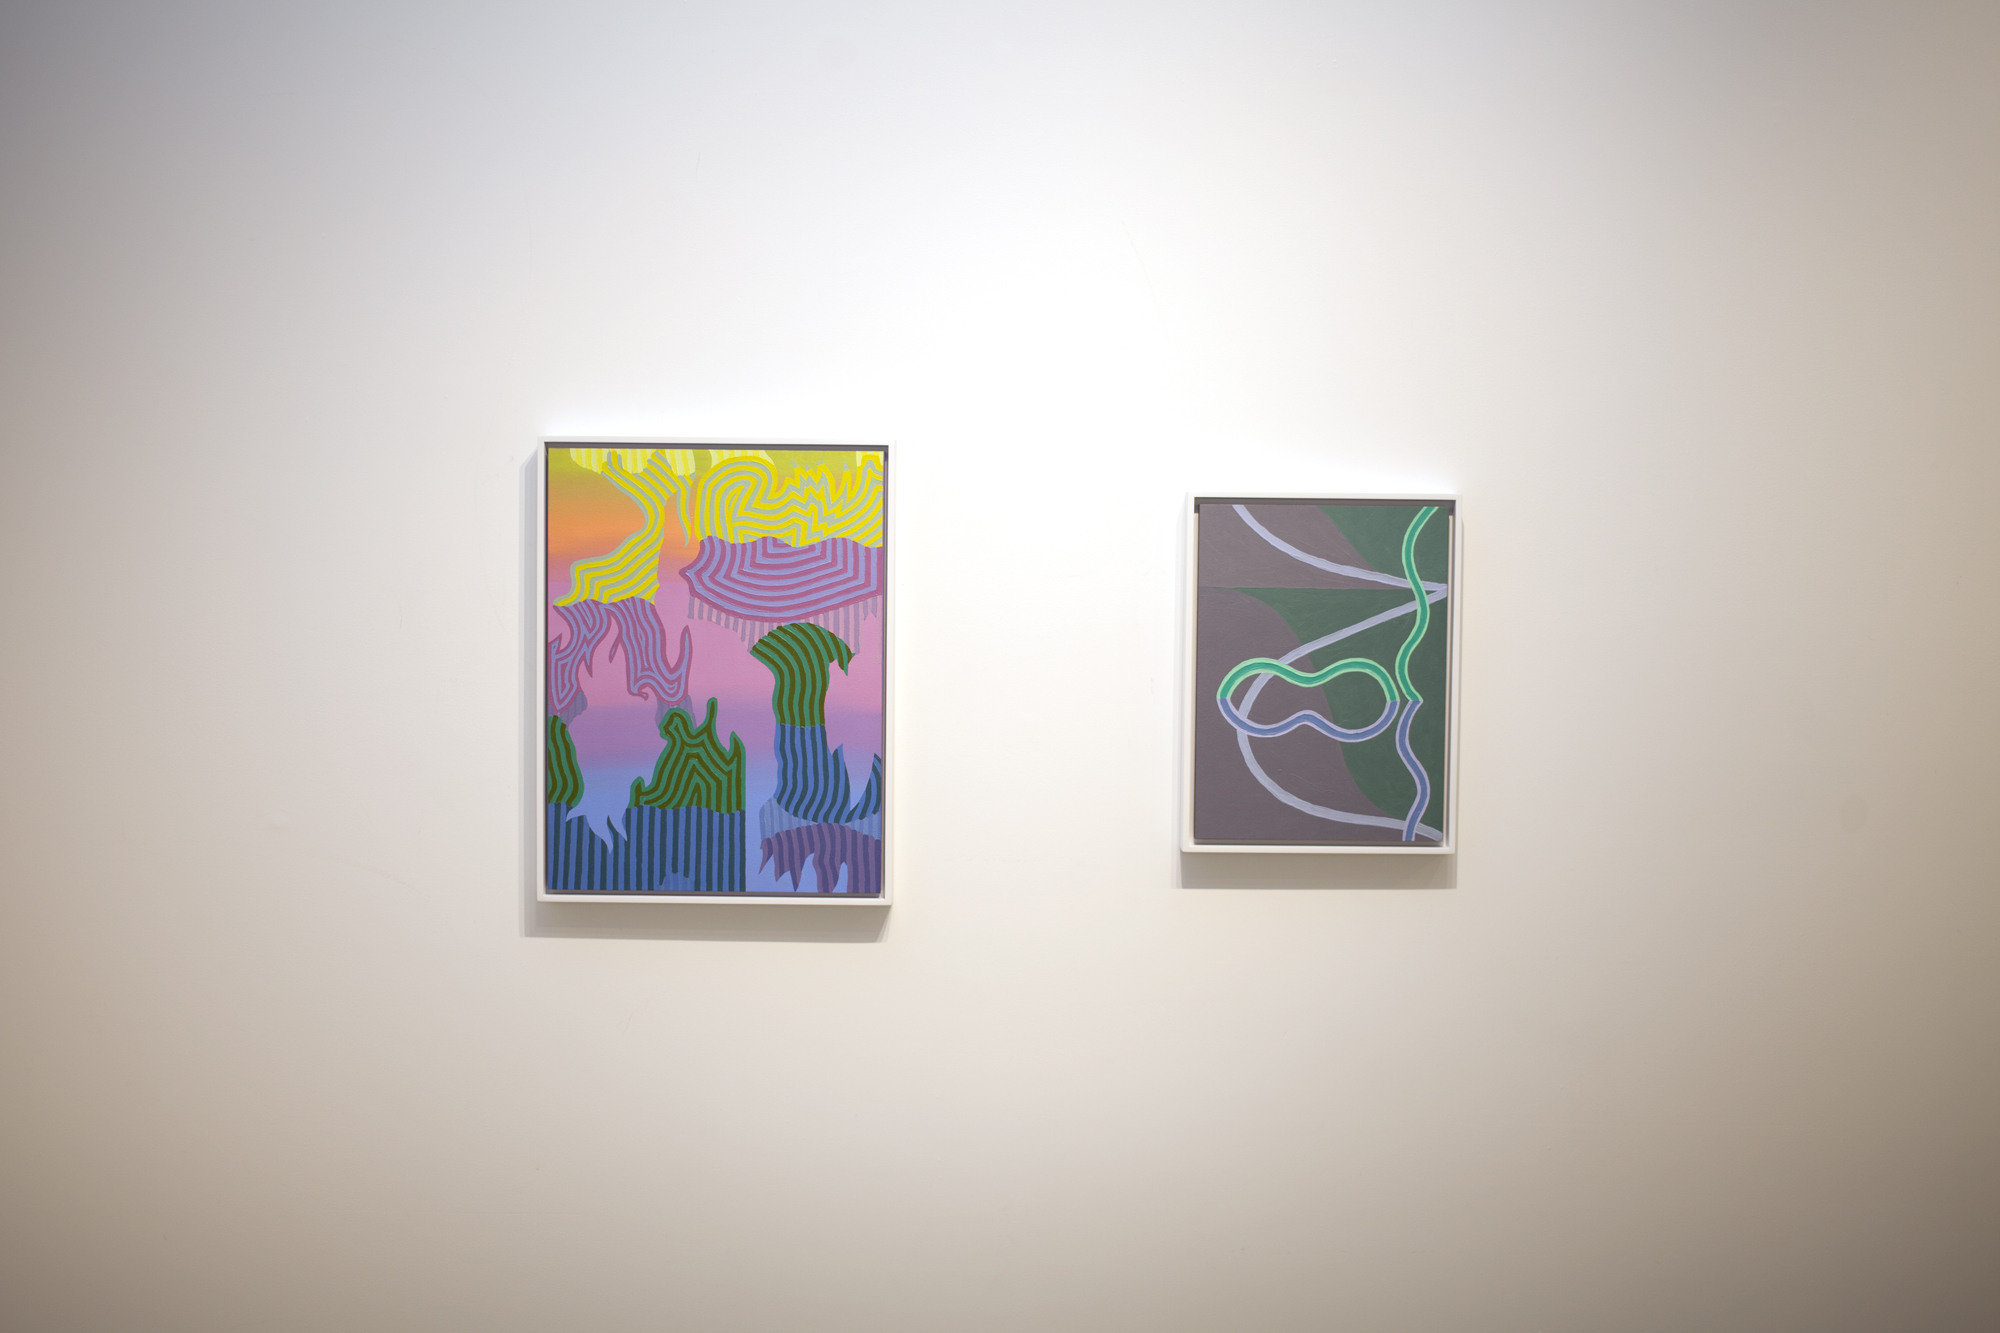 From left to right:  Caetlynn Booth,  Sunrise Study 2 , 2019, oil on paper, 17 x 13 inches framed Caetlynn Booth,  Synchronized Mirror II , Study 1, 2018, oil on paper, 13 x 10 inches framed